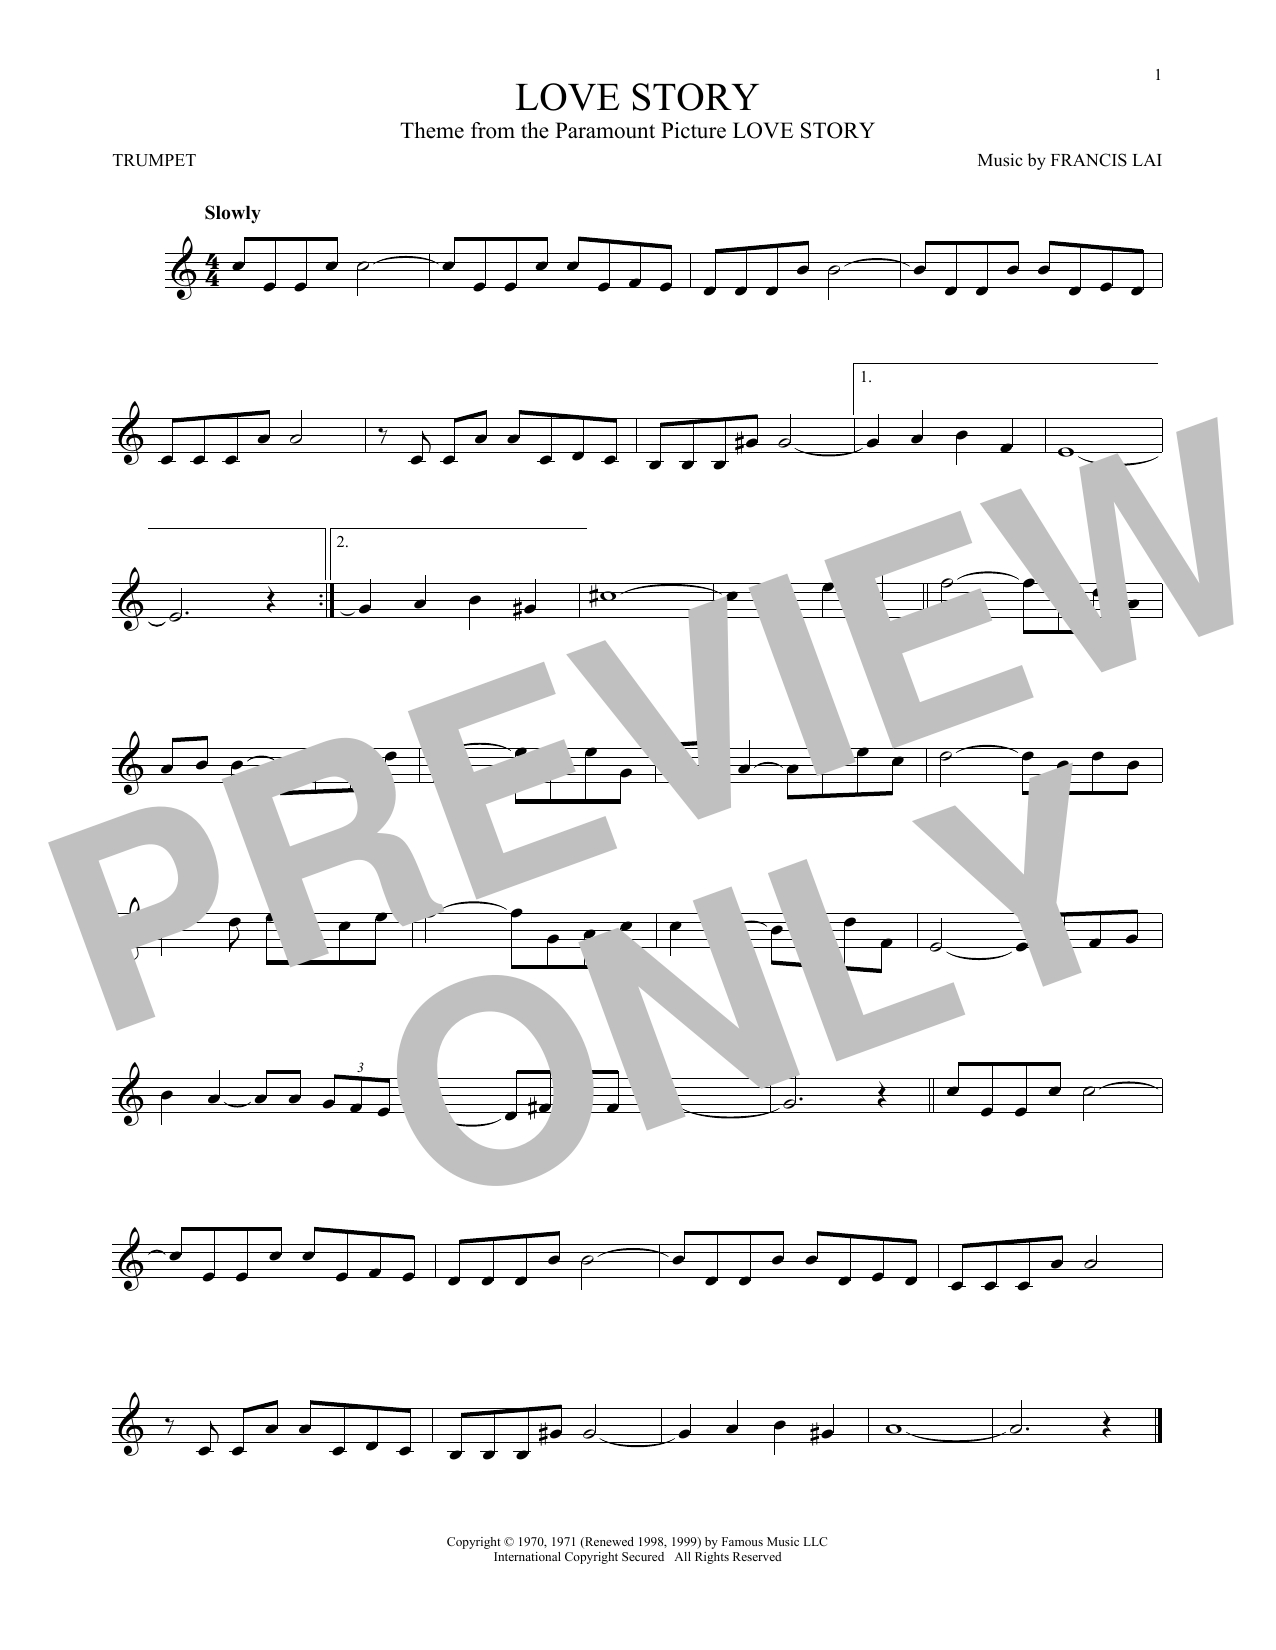 Love Story Chords Francis Lai Love Story Sheet Music Notes Chords Download Printable Trumpet Sku 168799